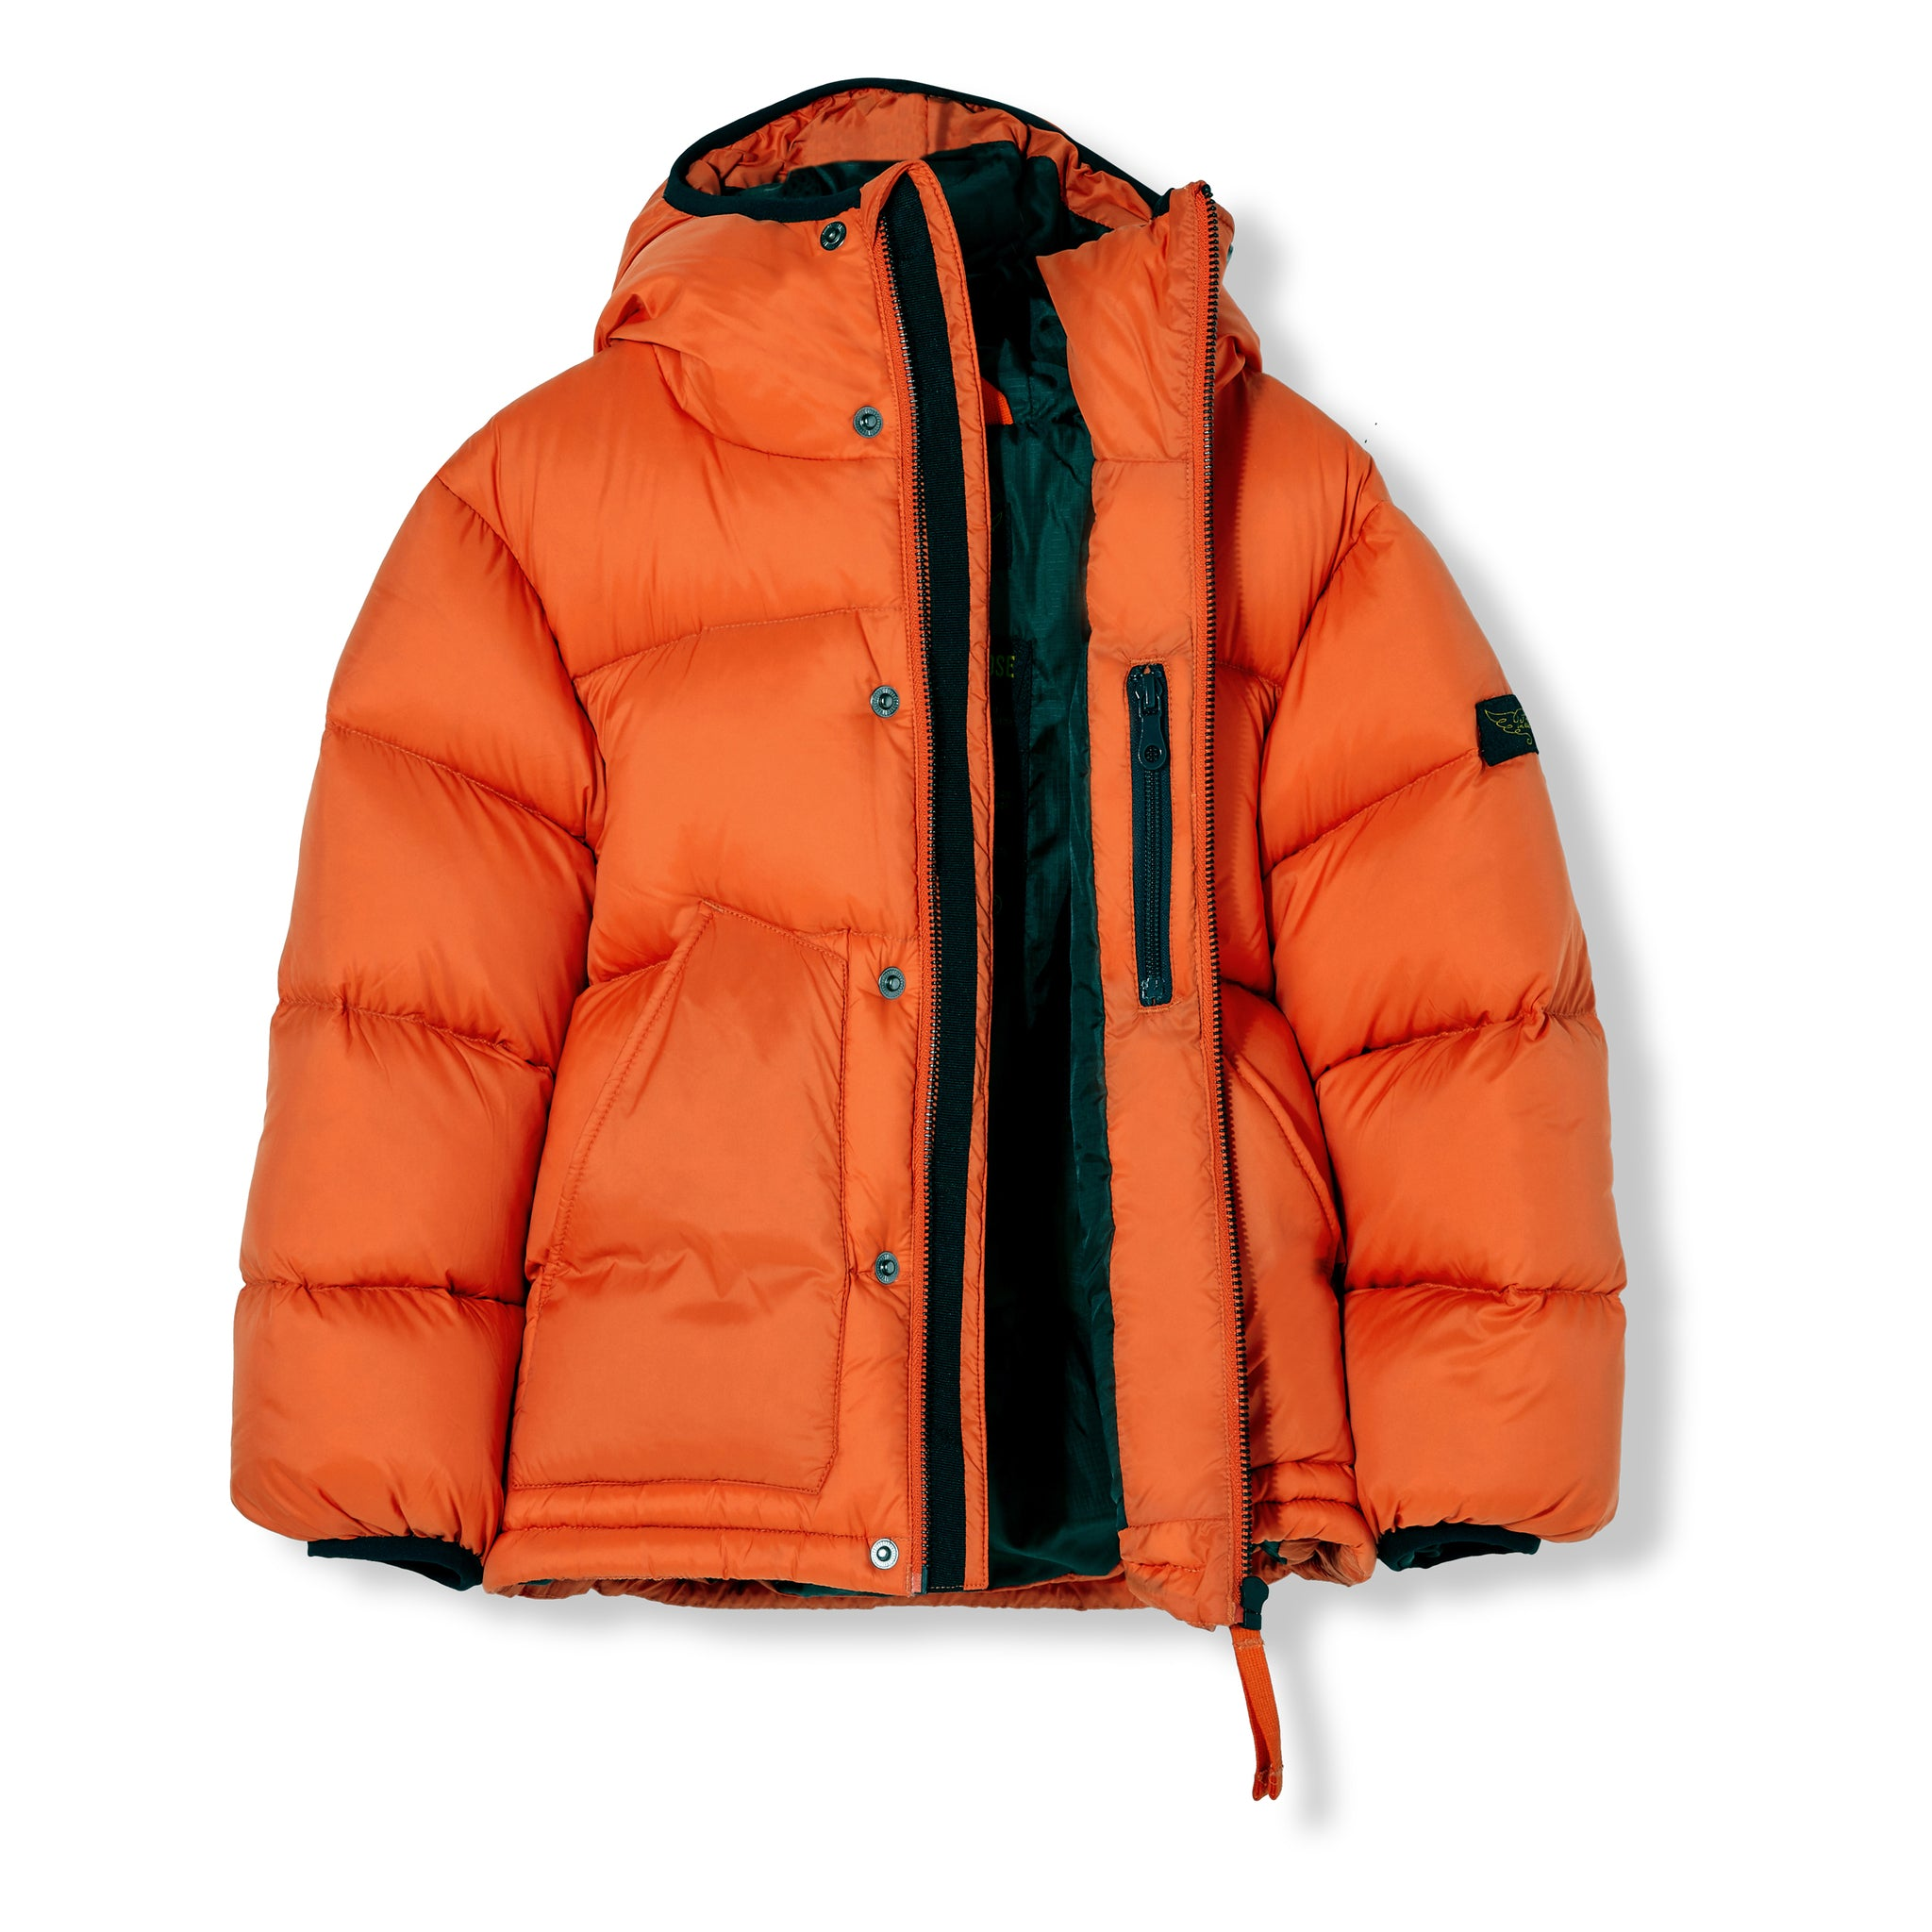 SNOWFLOW Tangerine - Down Jacket 2